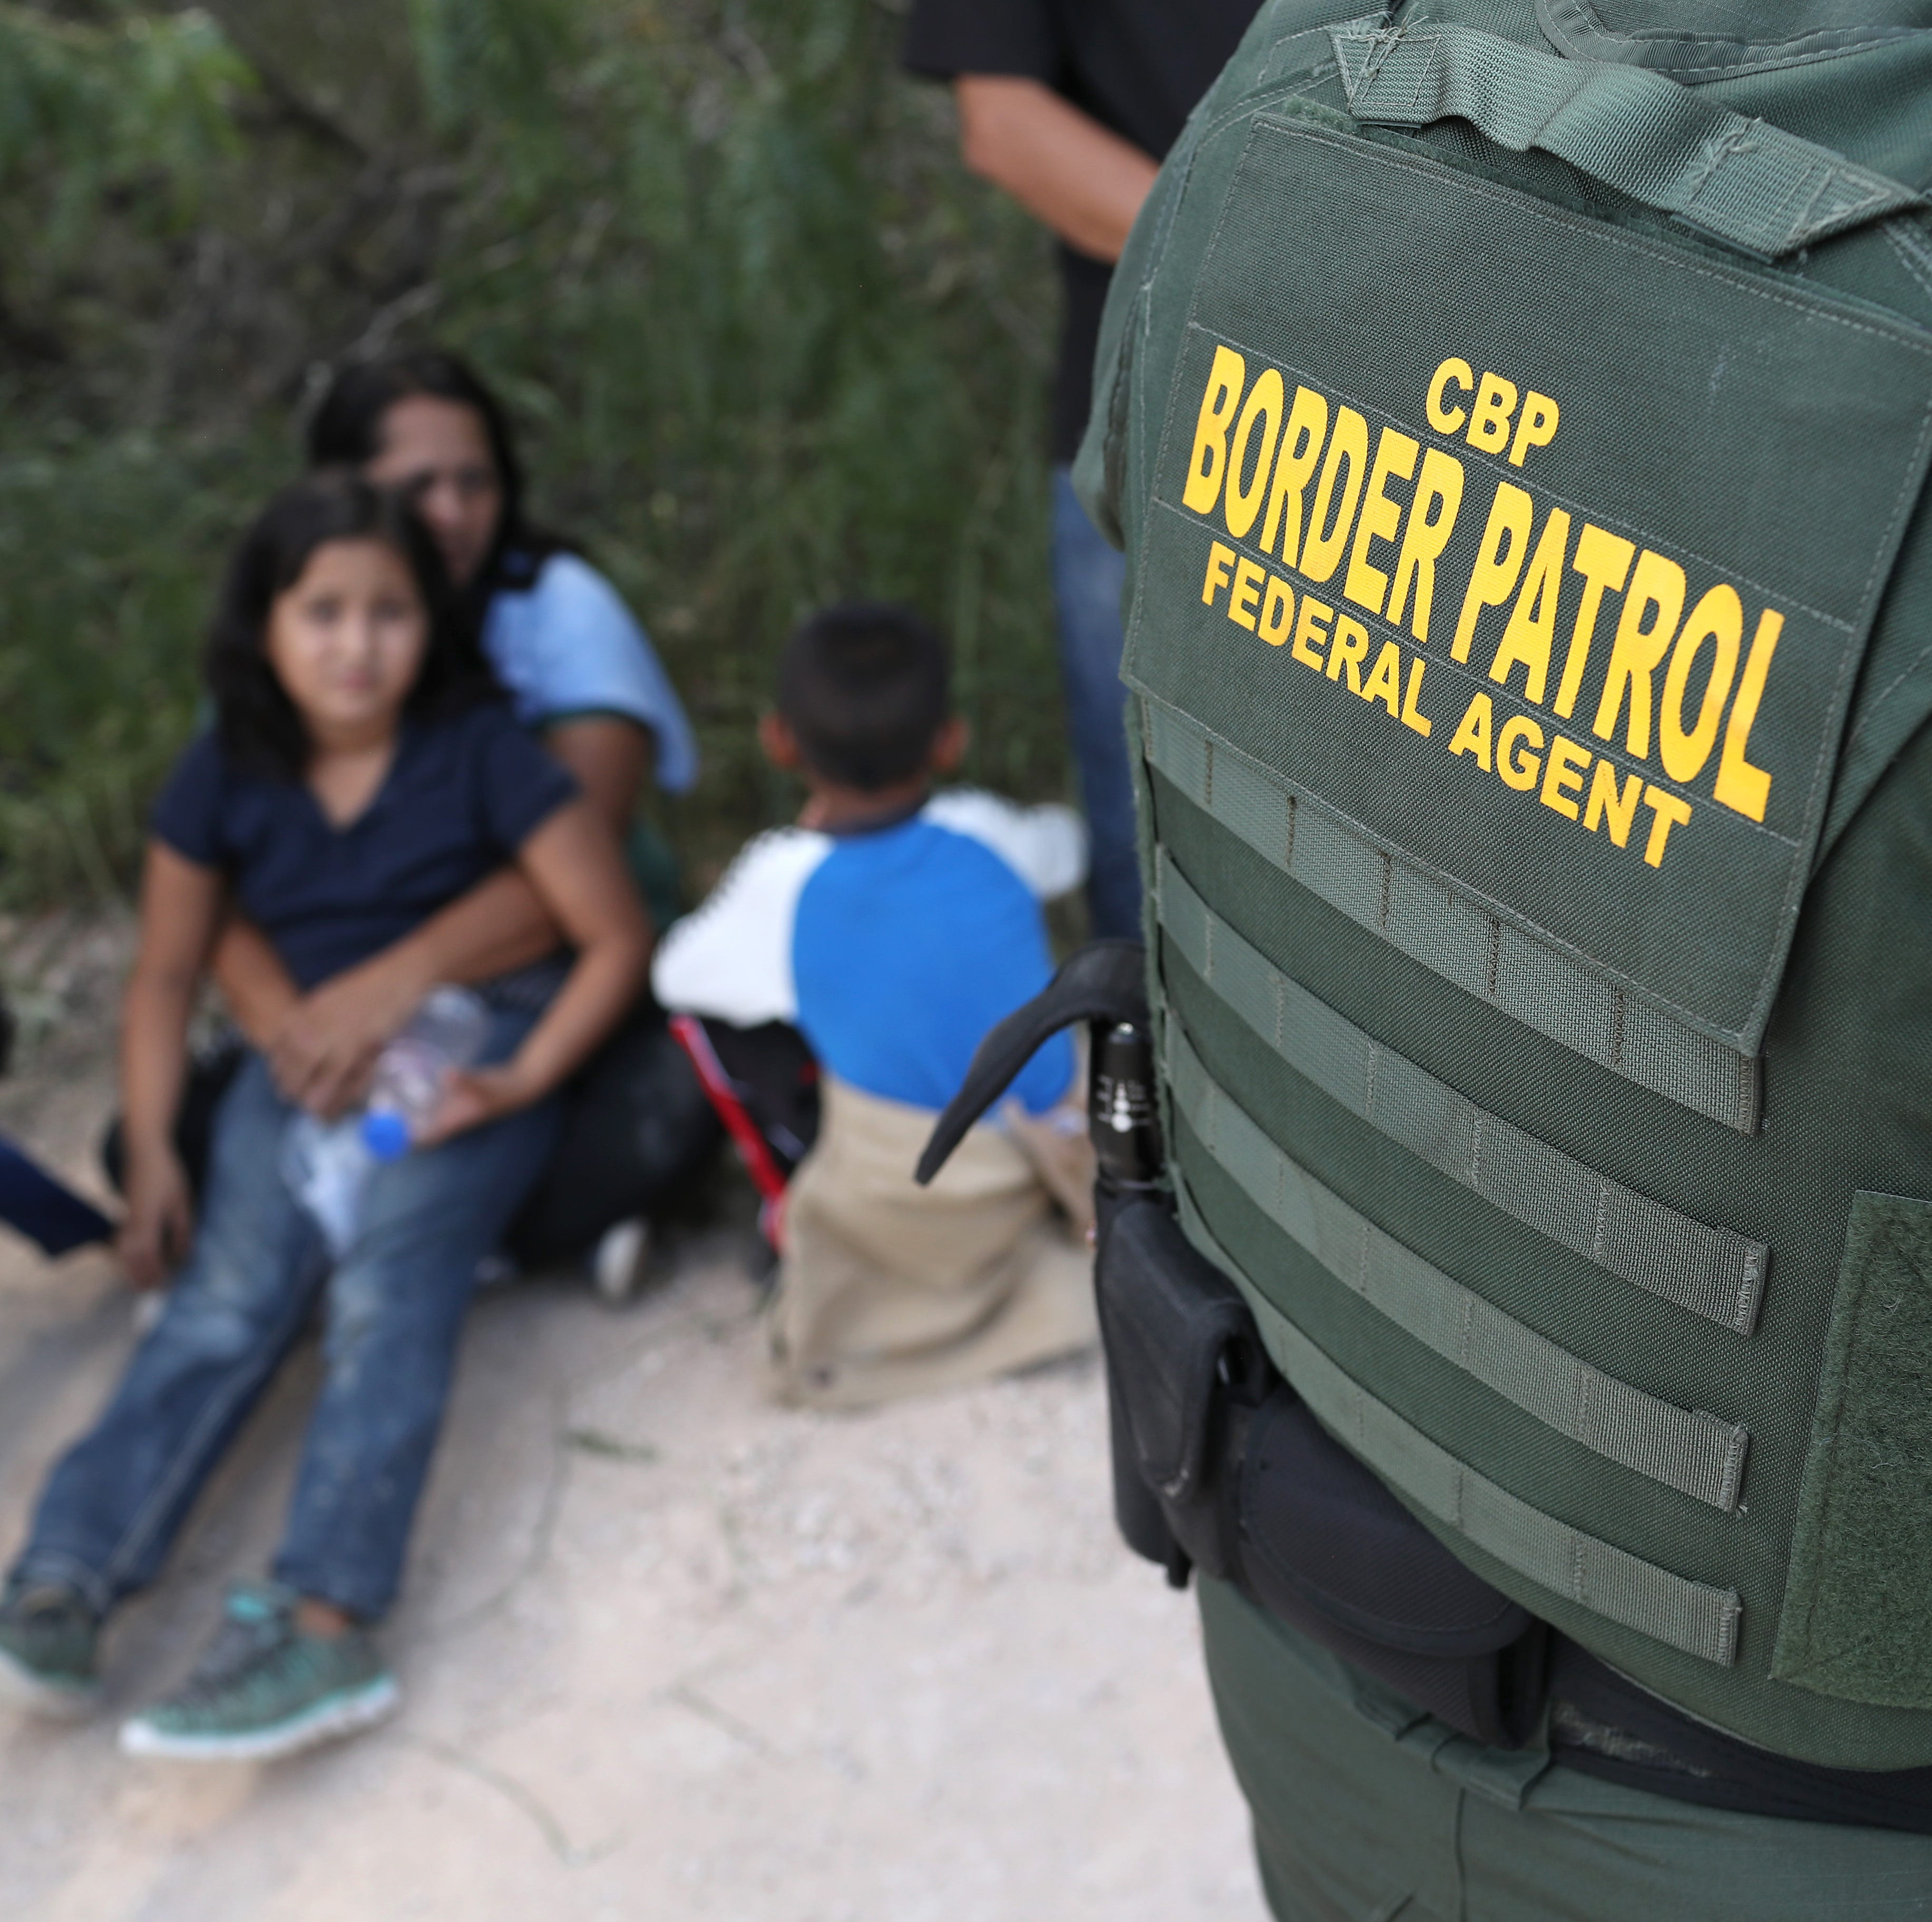 Report is an indictment of DHS Zero Tolerance policy